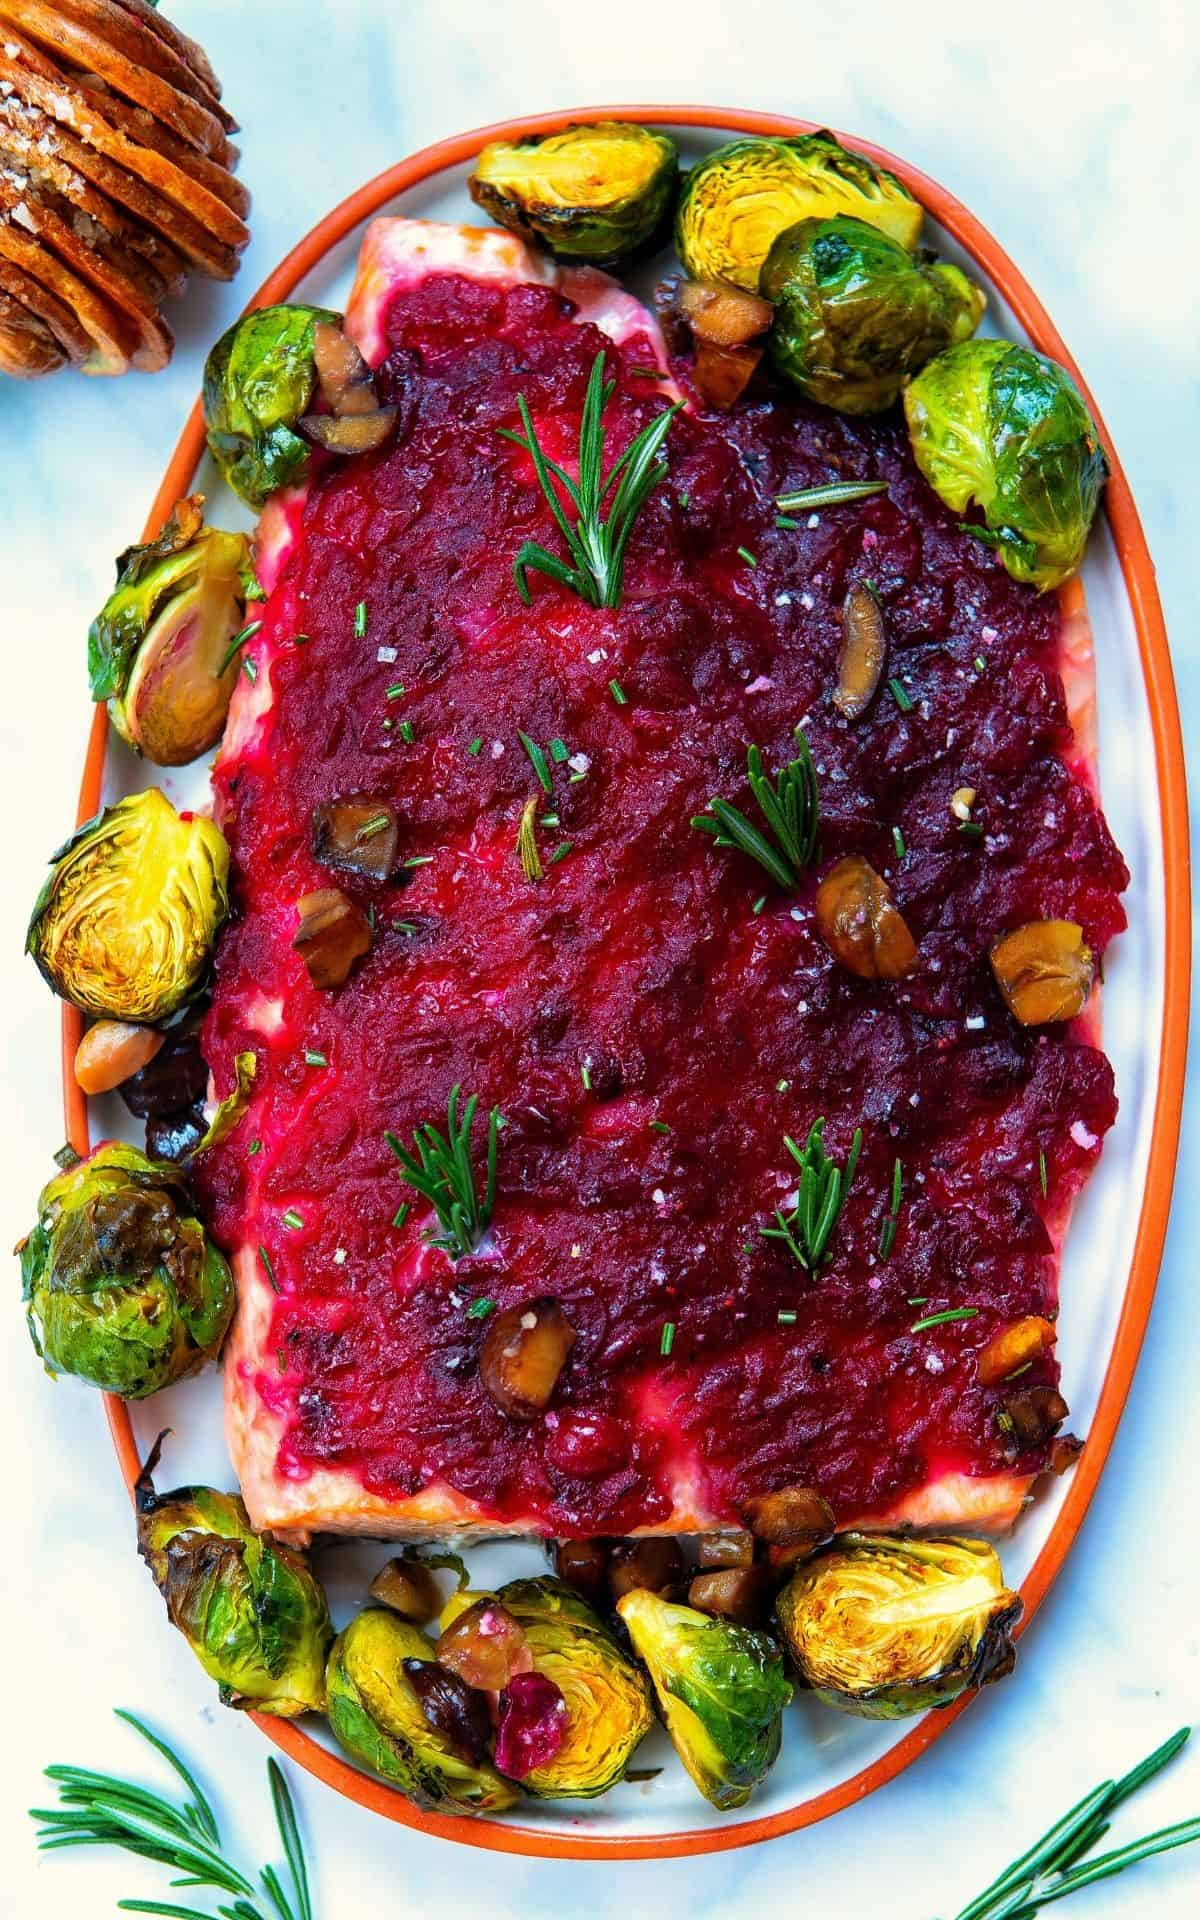 A serving platter container a cranberry sauce baked salmon.